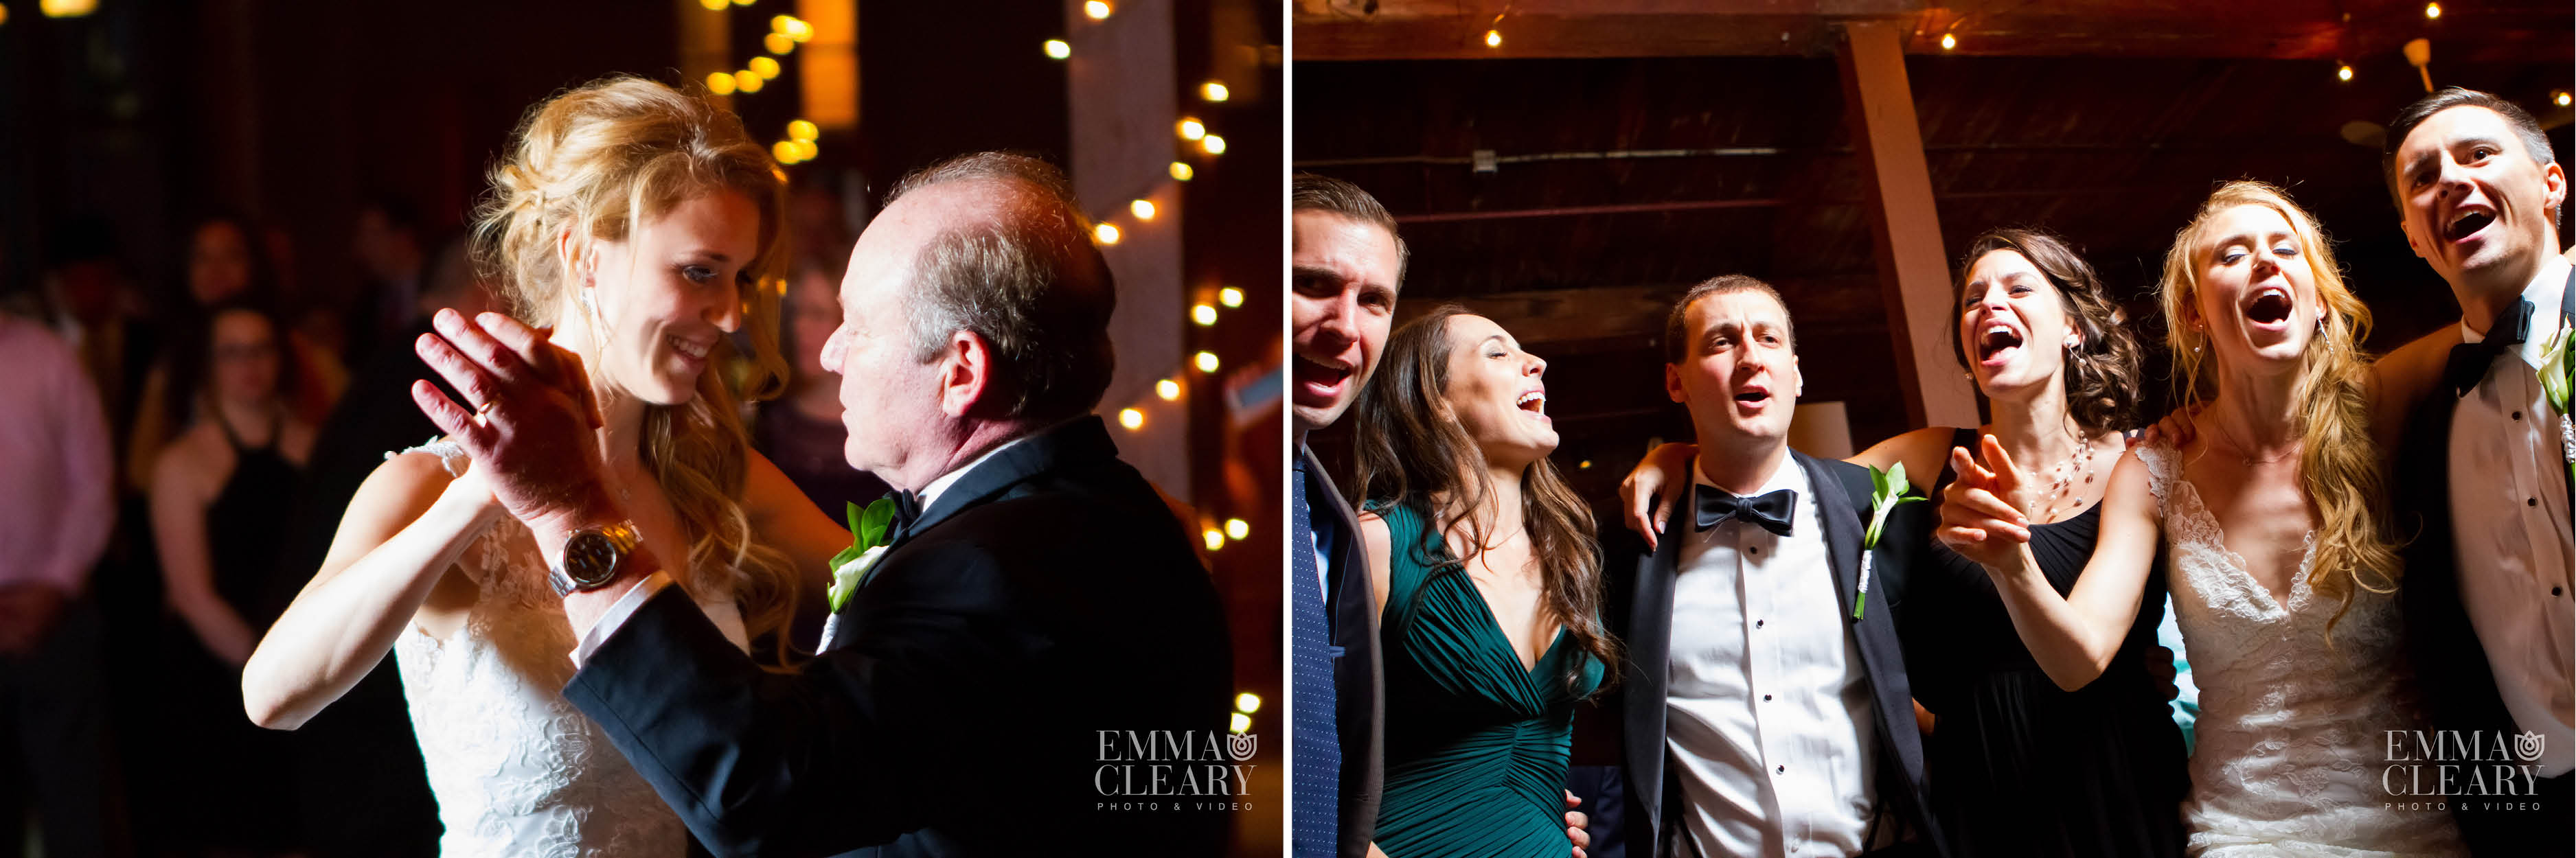 Emma_cleary_photography the Metropolitan Building wedding26